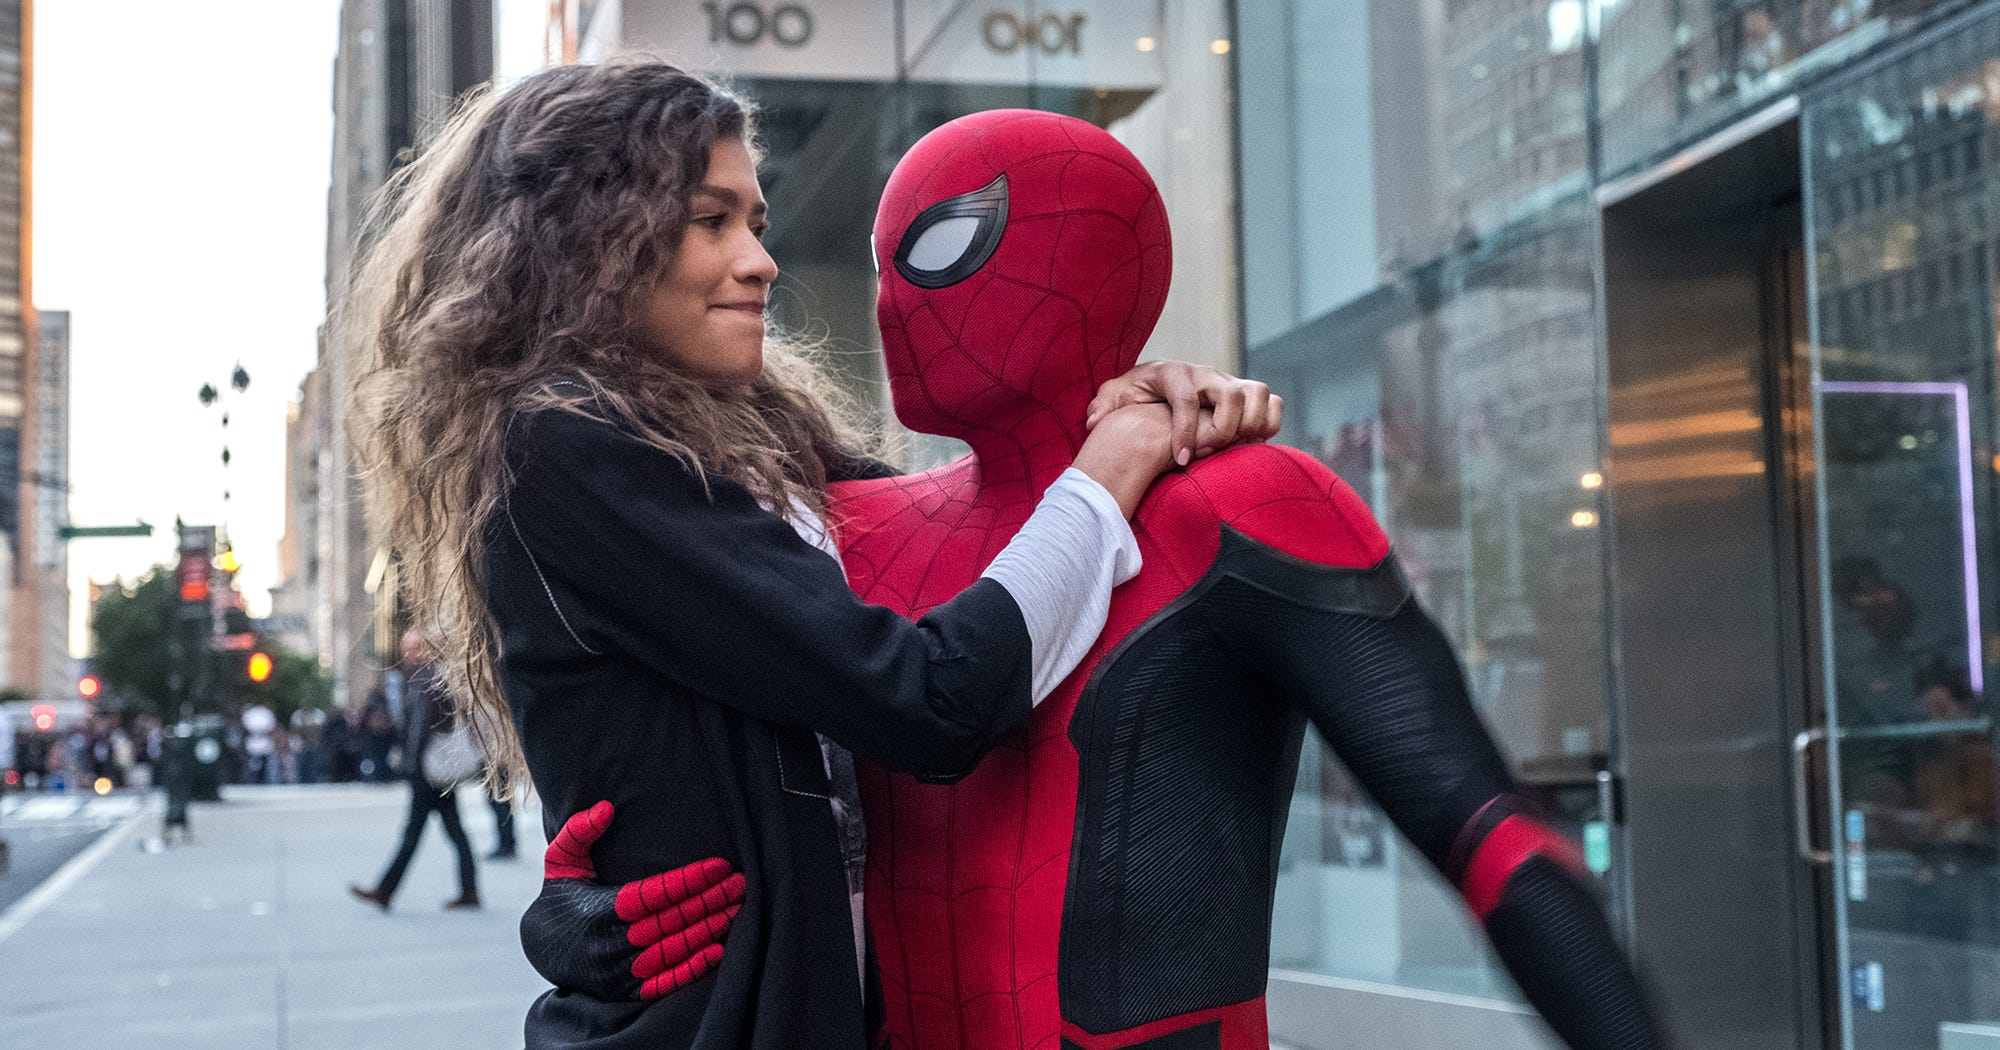 Spider-Man Homecoming 2 Review: How Is Your Spider-Son?